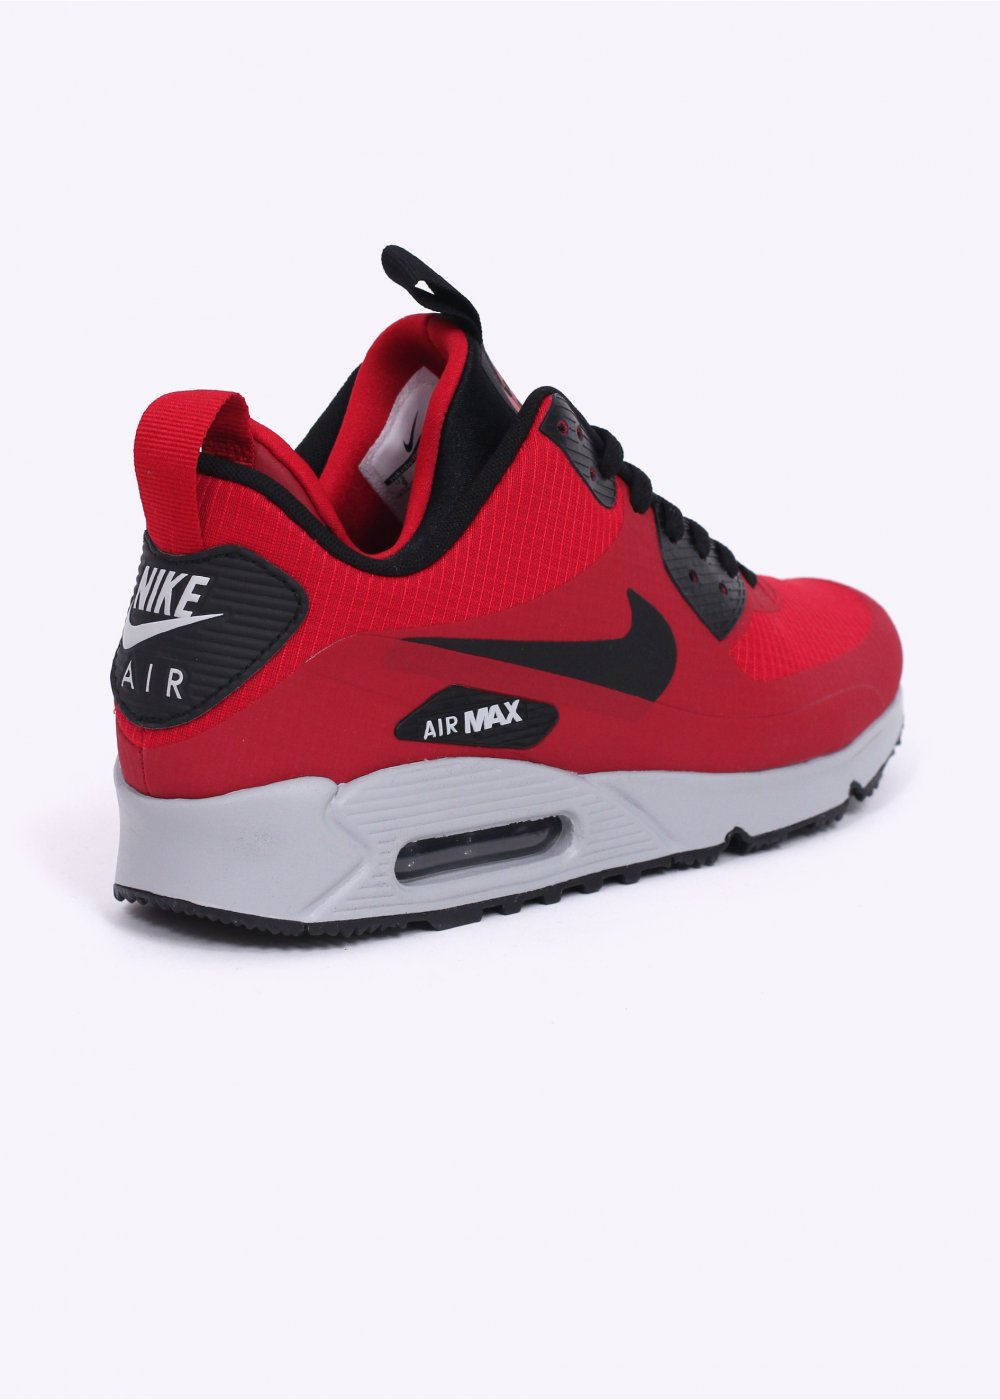 nike air max 90 mid winter sneakerboots gym red black. Black Bedroom Furniture Sets. Home Design Ideas